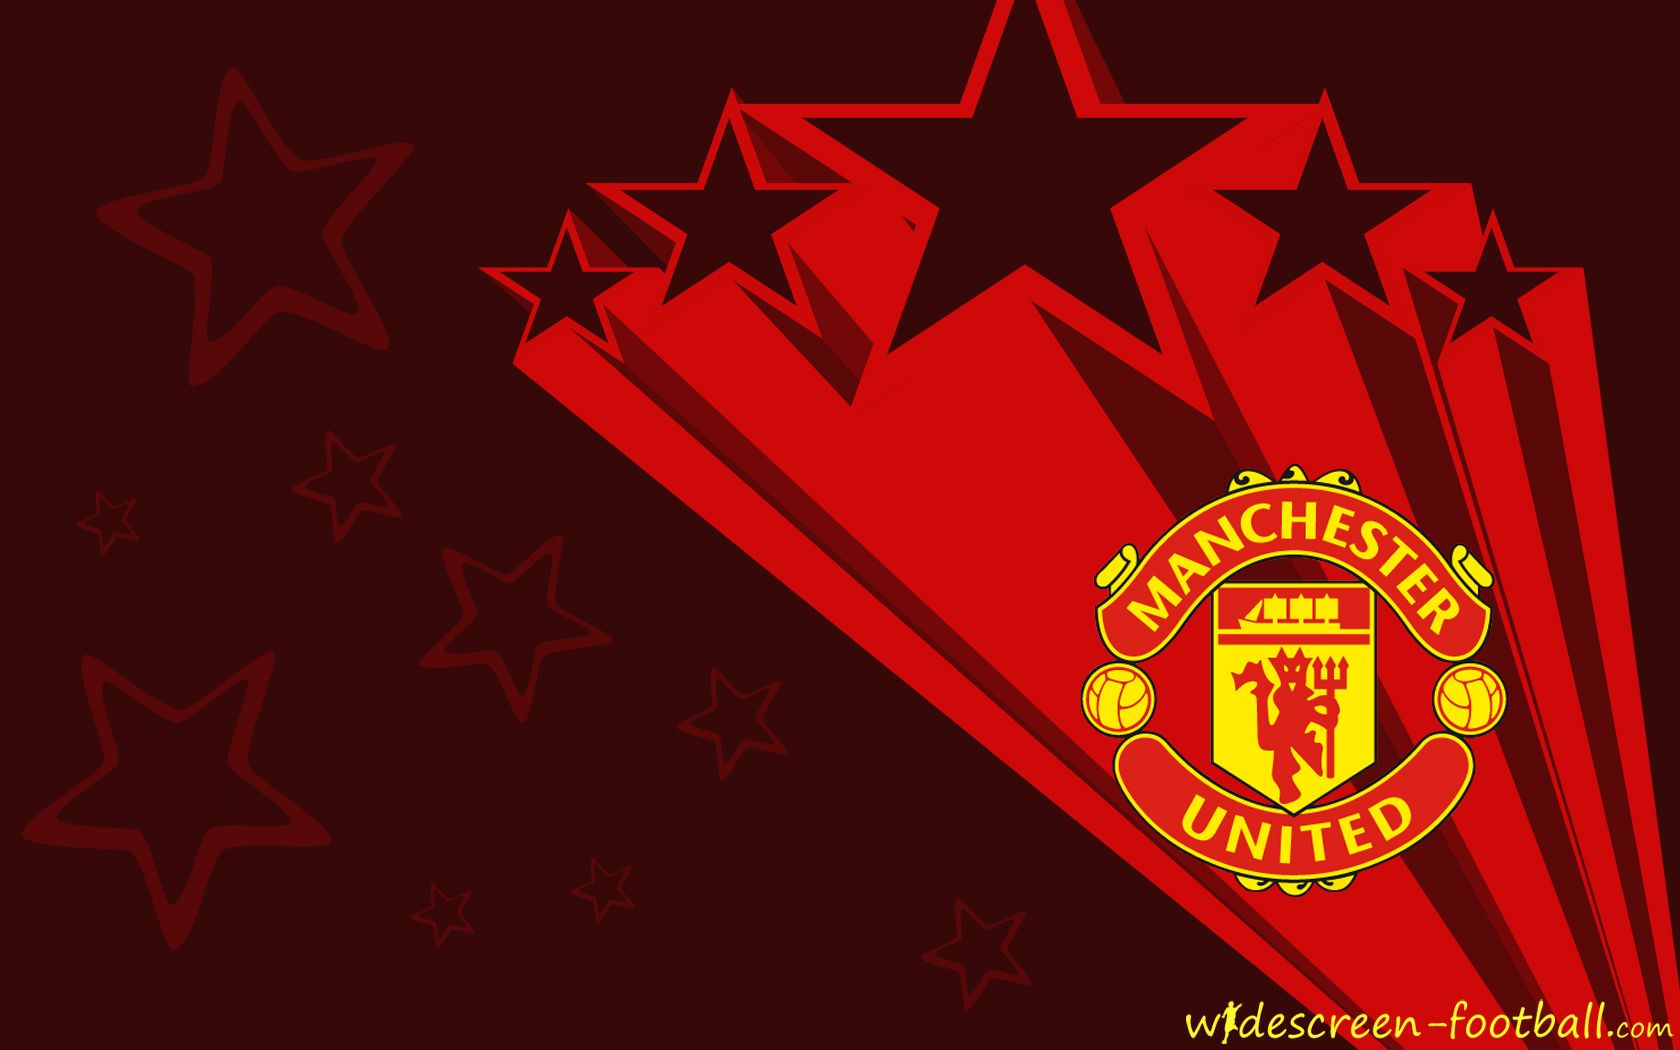 Manchester united wallpaper android apps on google play wallpapers